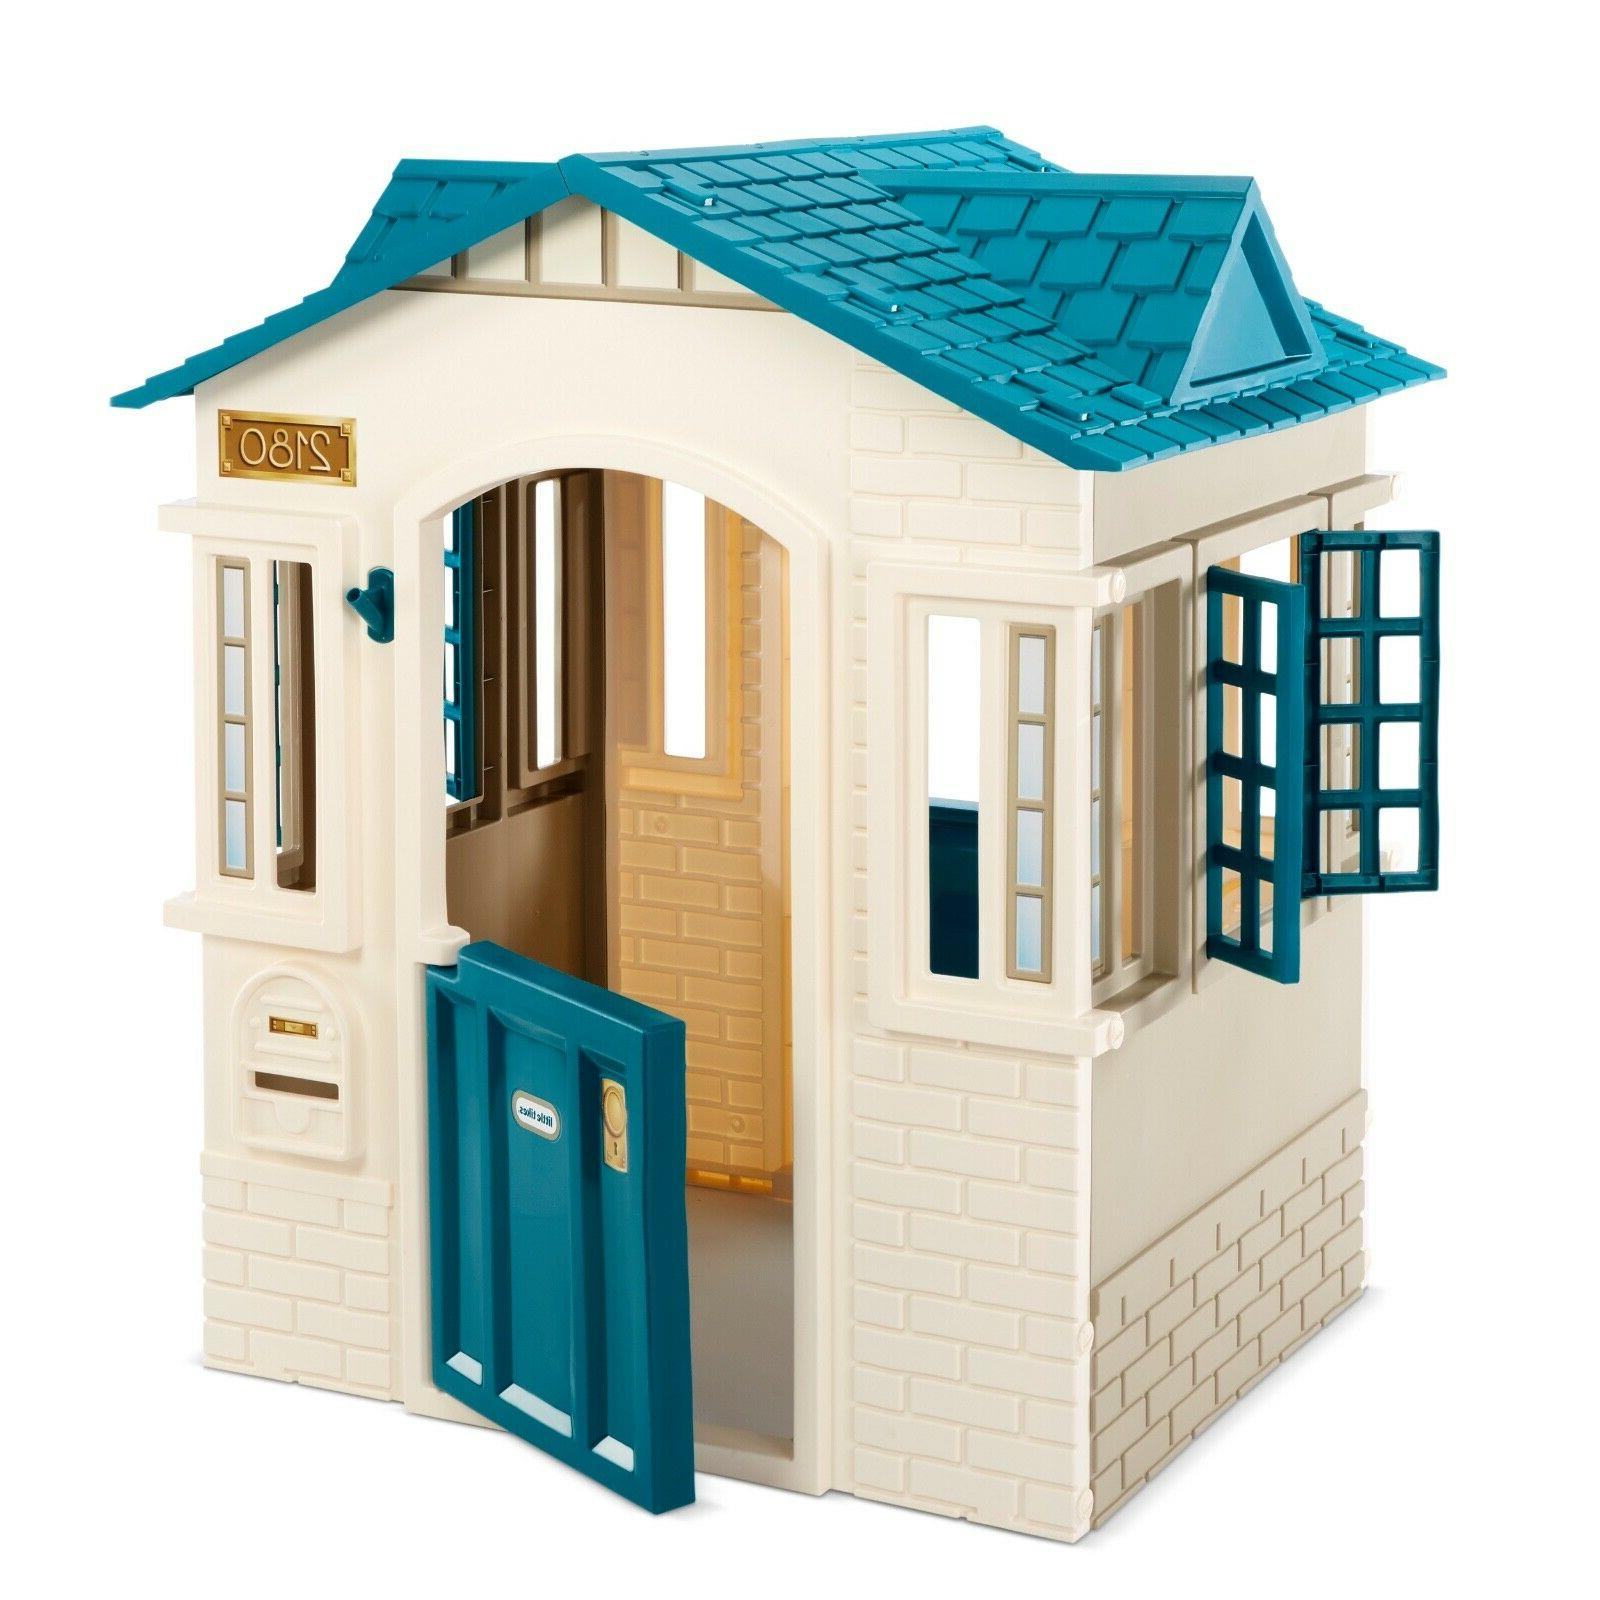 Cope Playhouse Patio Outdoor Plastic New Free